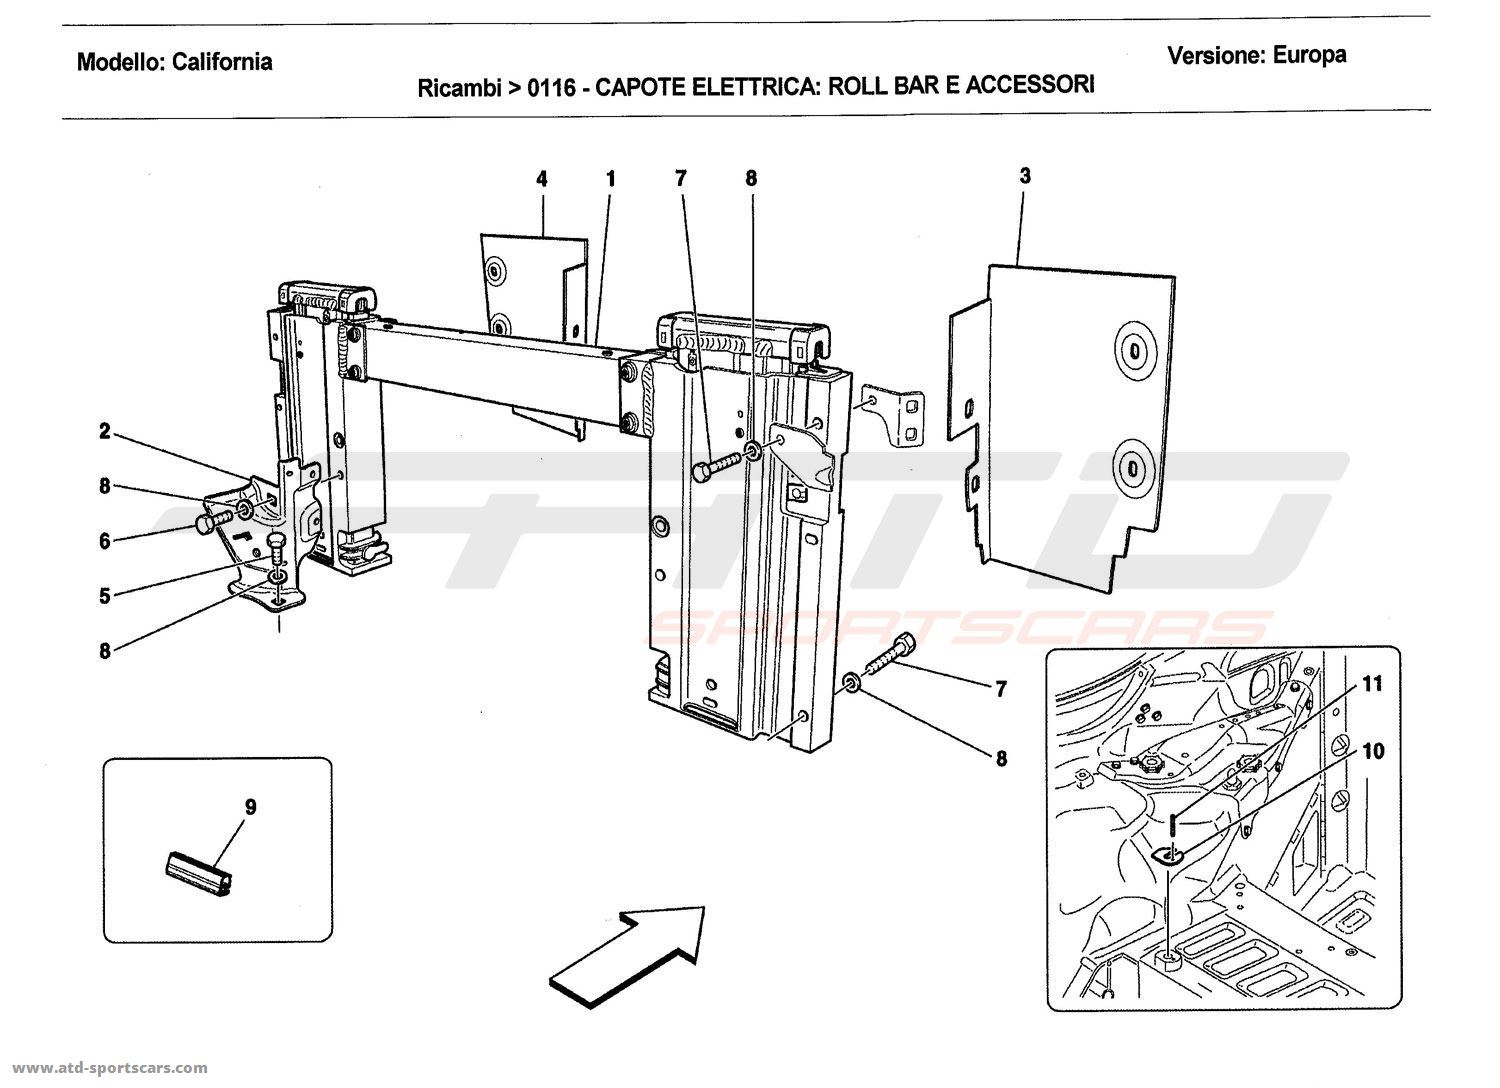 ELECTRIC ROOF: ROLL BAR AND ACCESSORIES